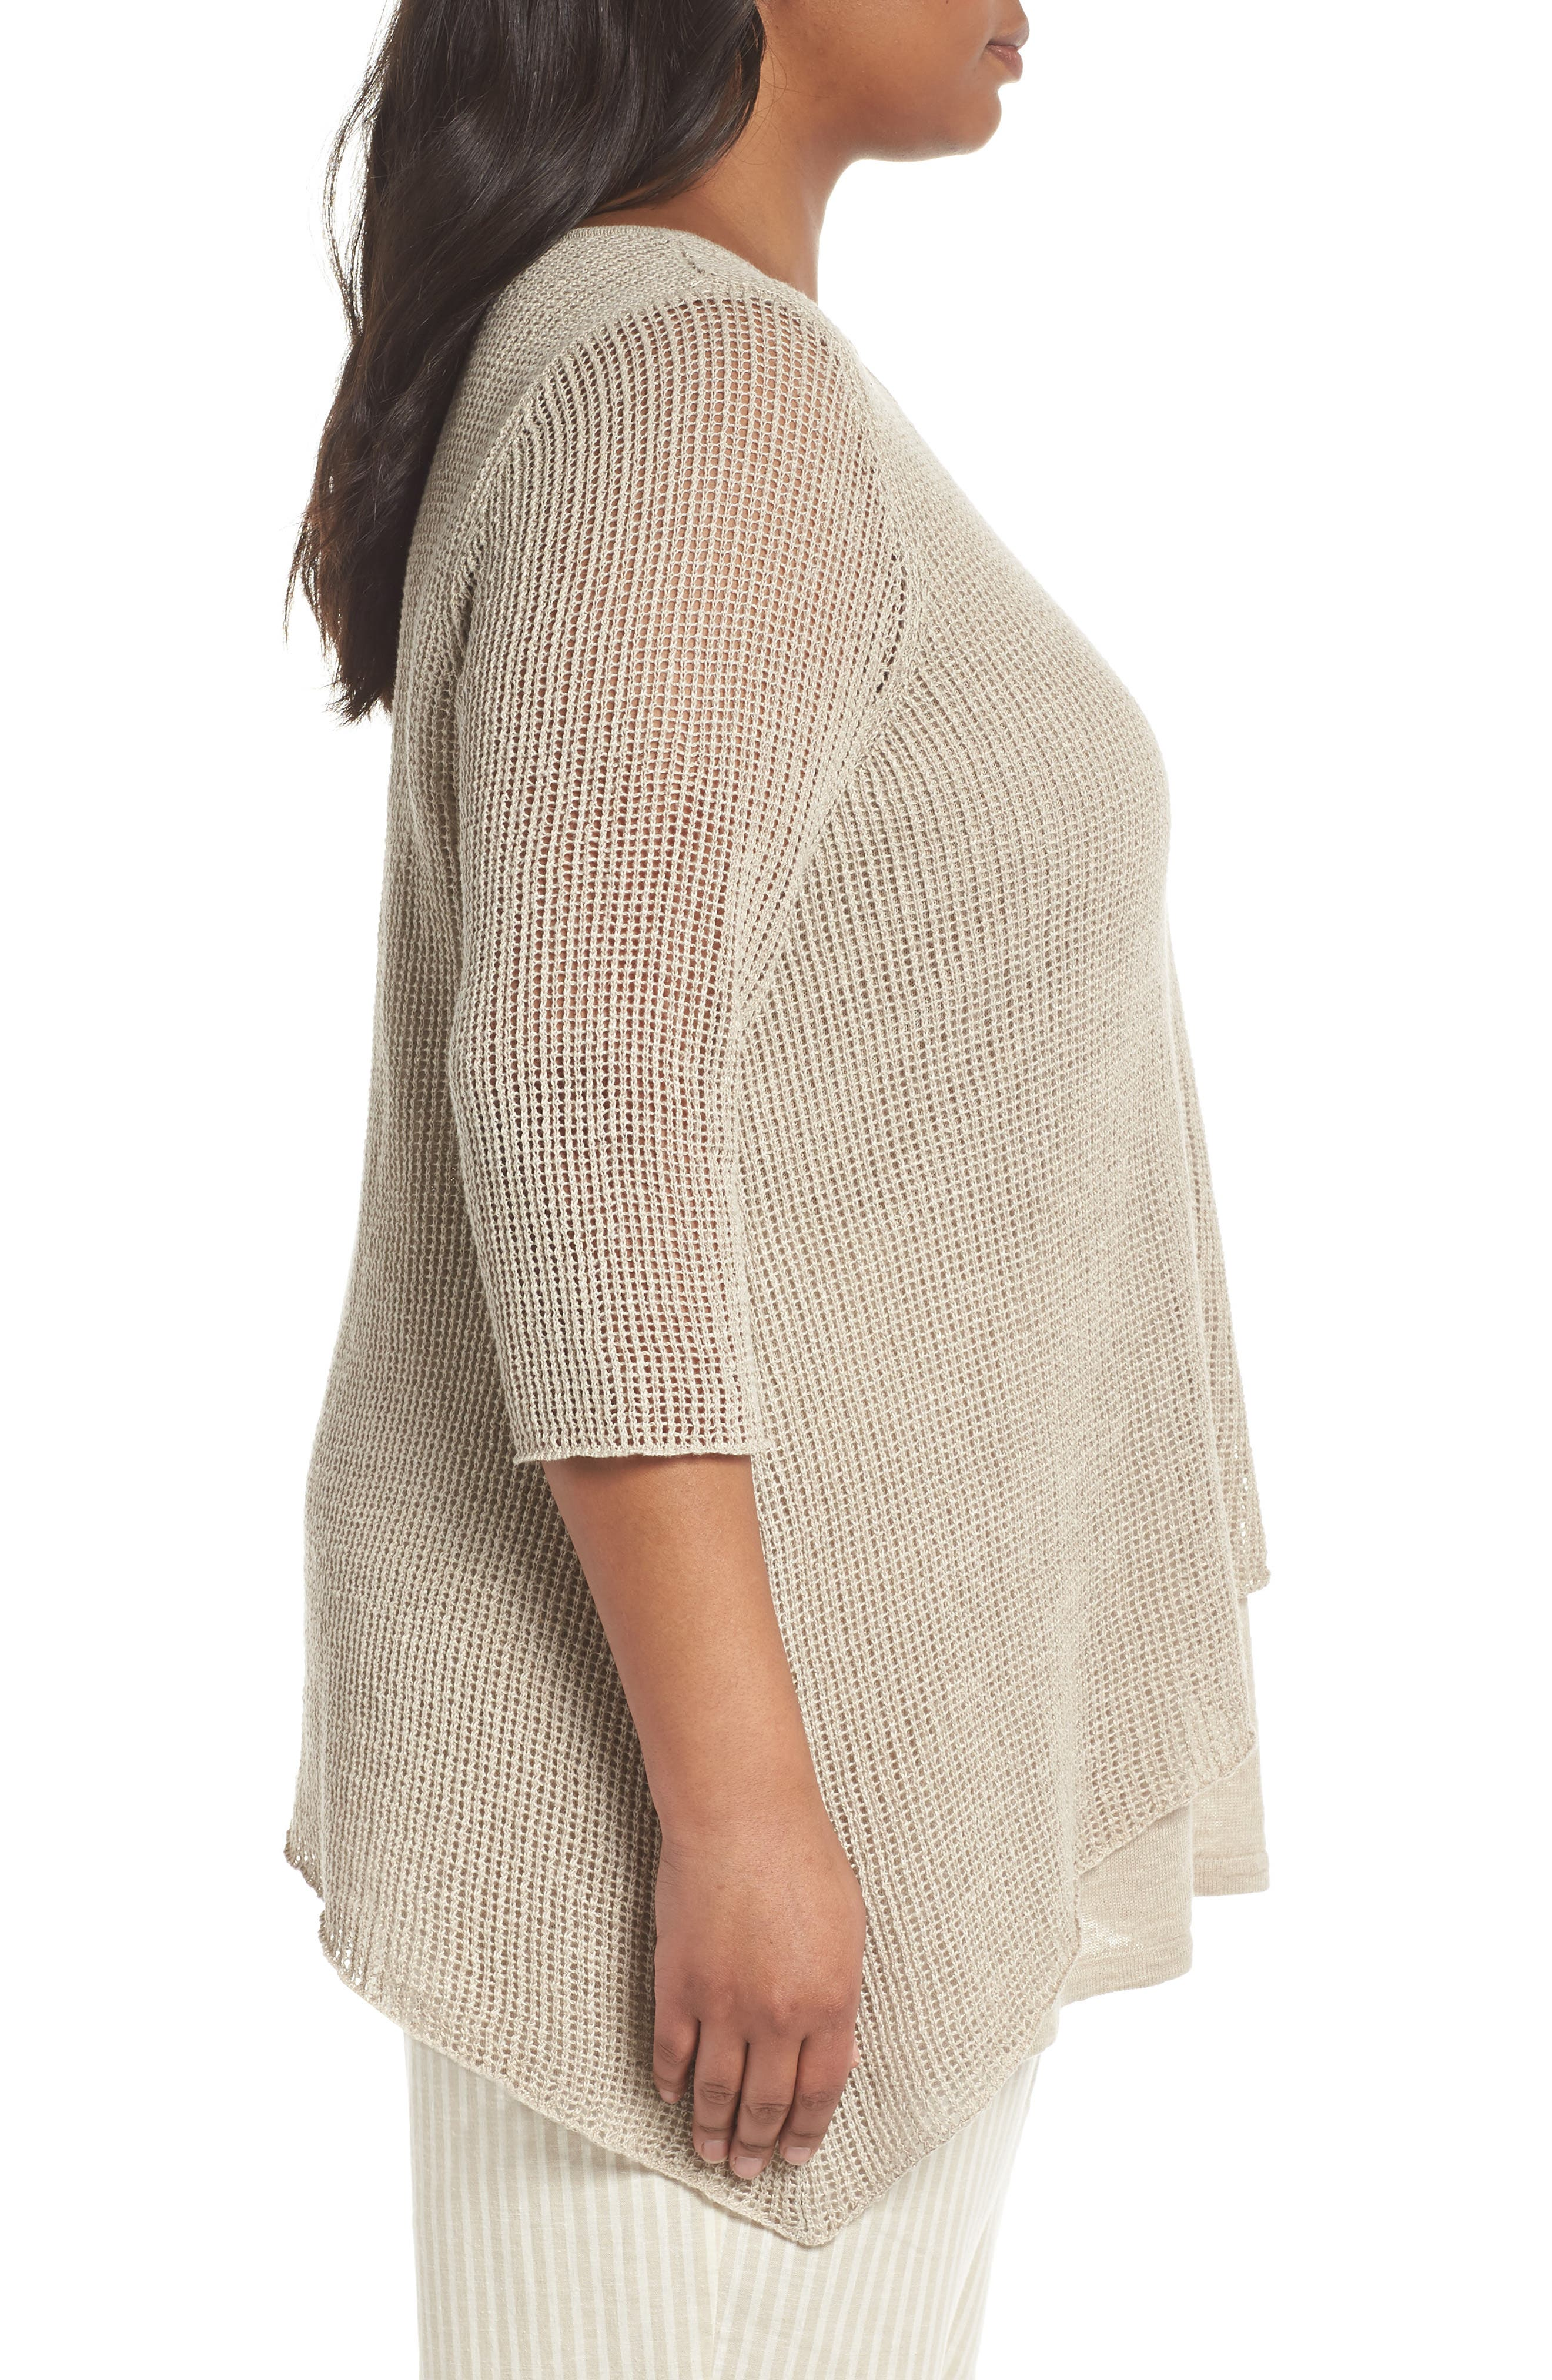 Layered Organic Linen Tunic Sweater,                             Alternate thumbnail 3, color,                             251